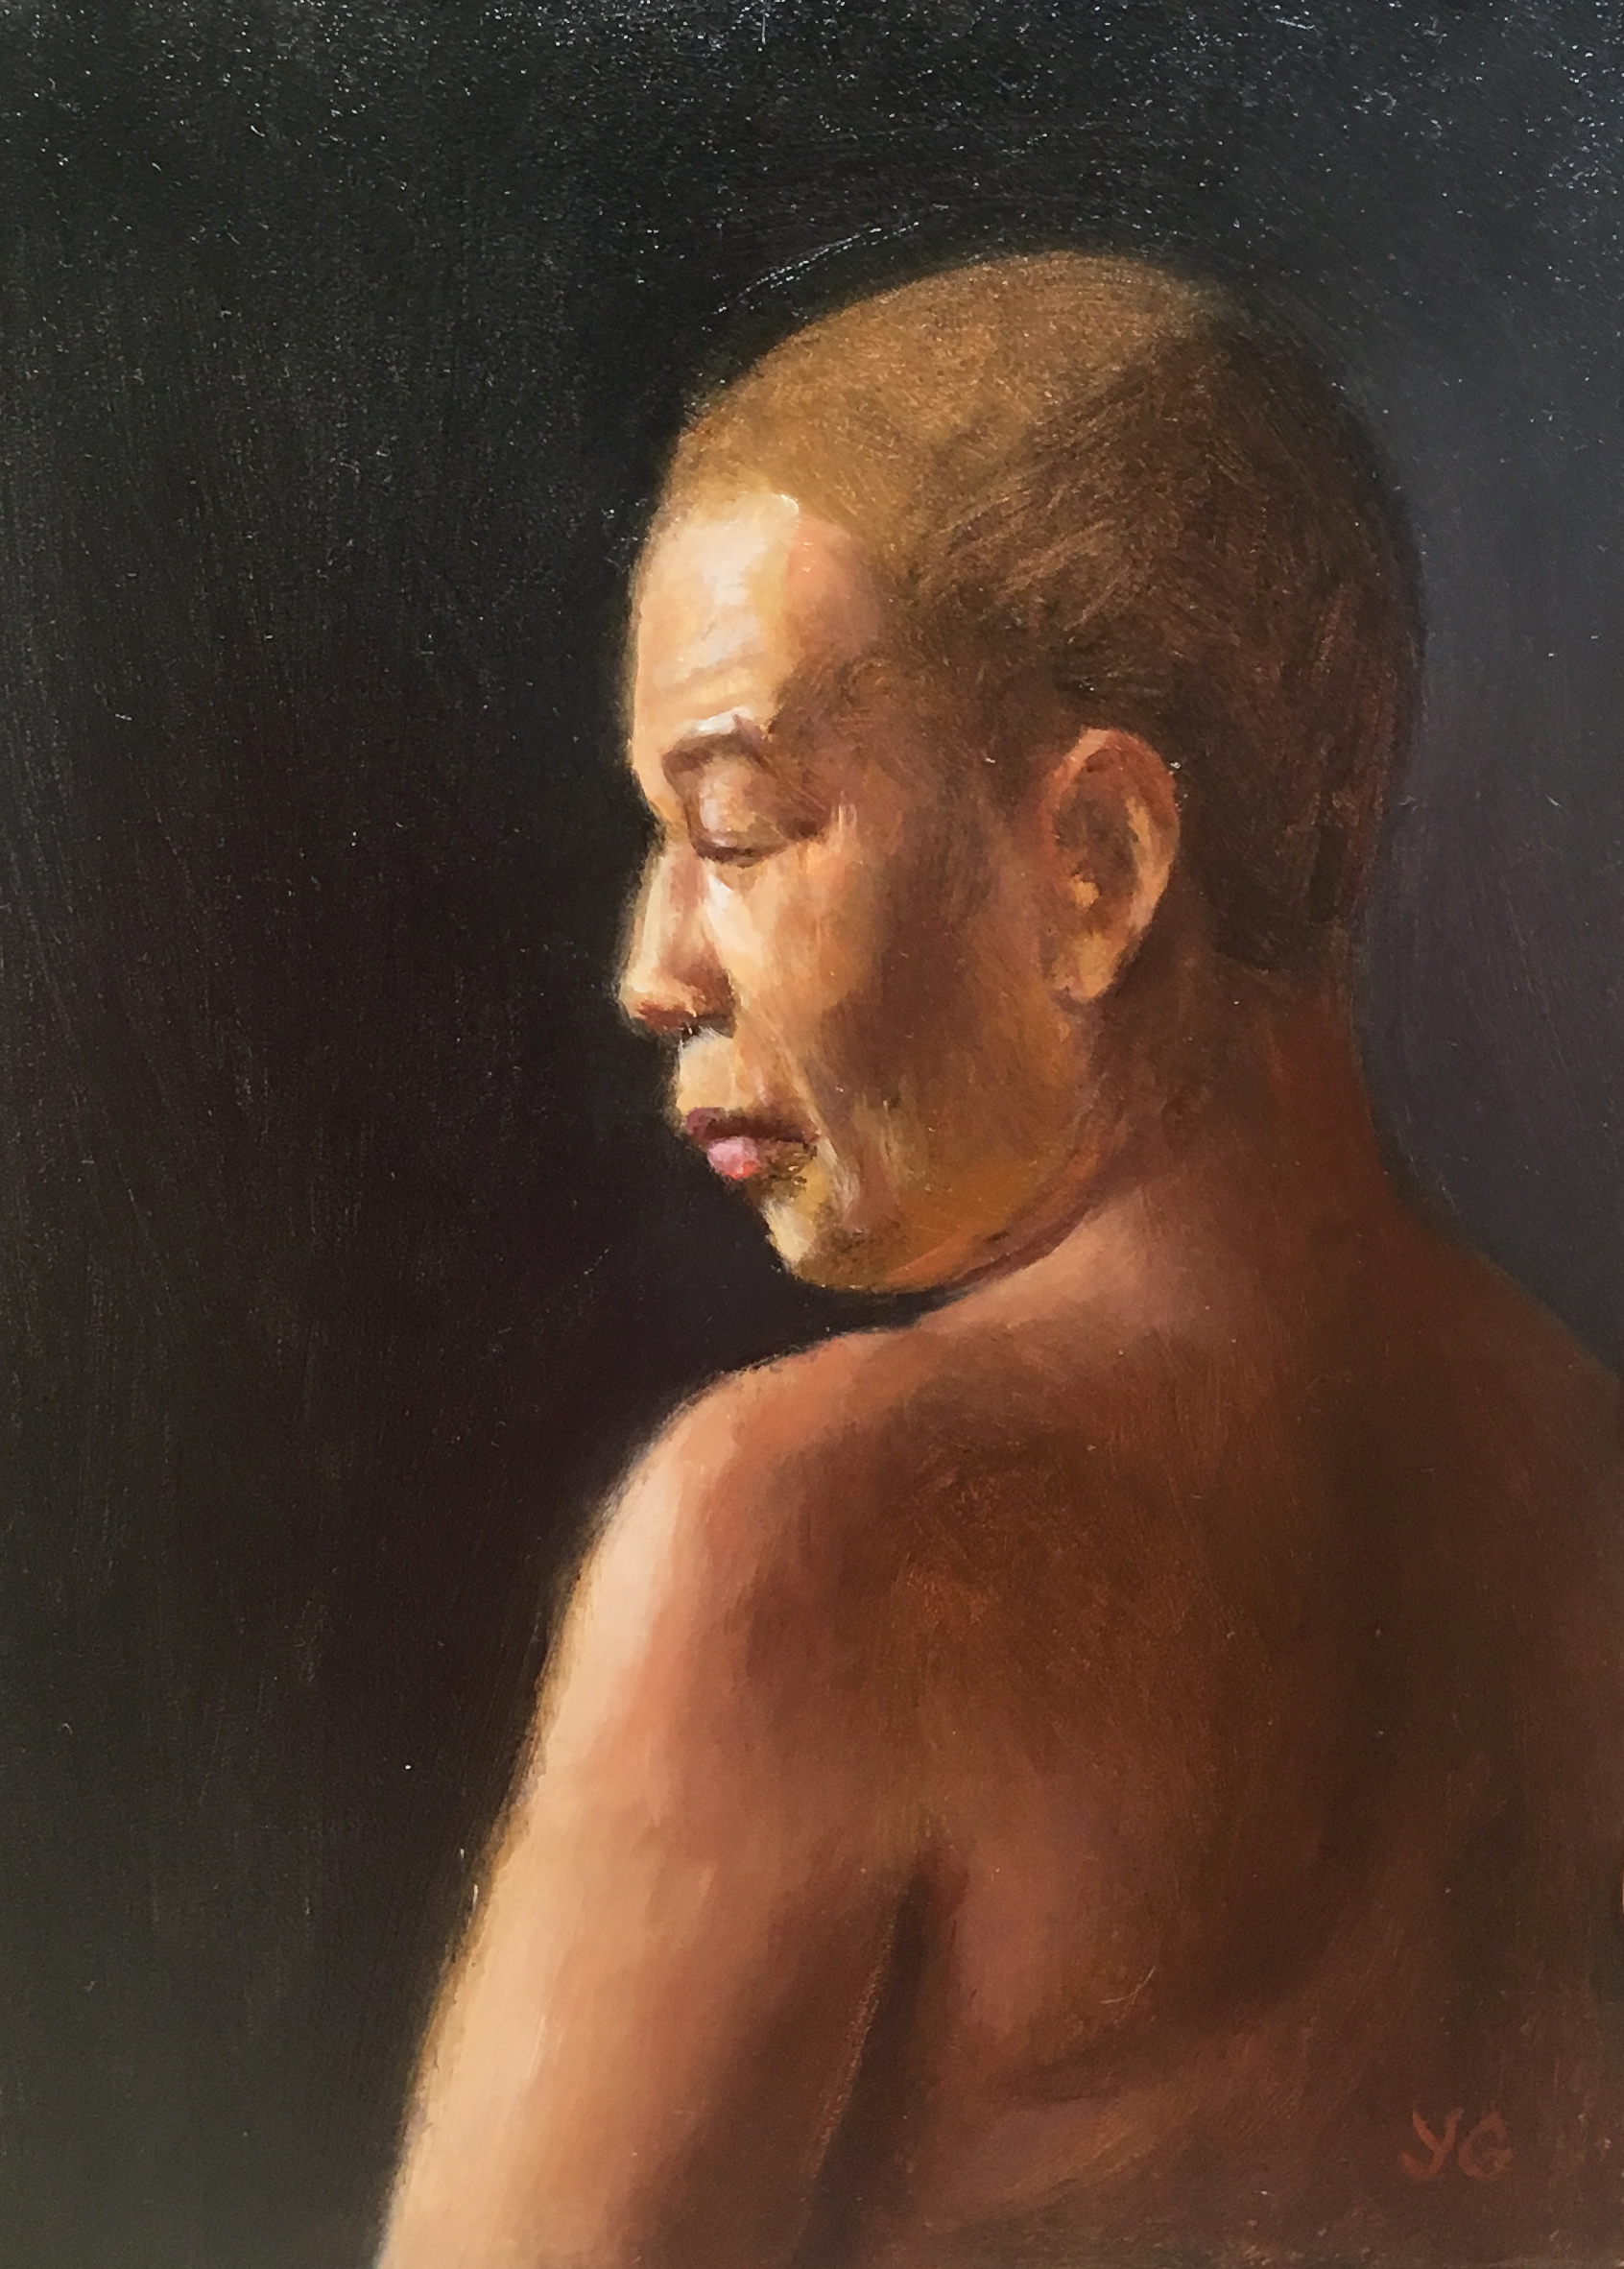 Woman with Short Hair 5x7 Oil on board